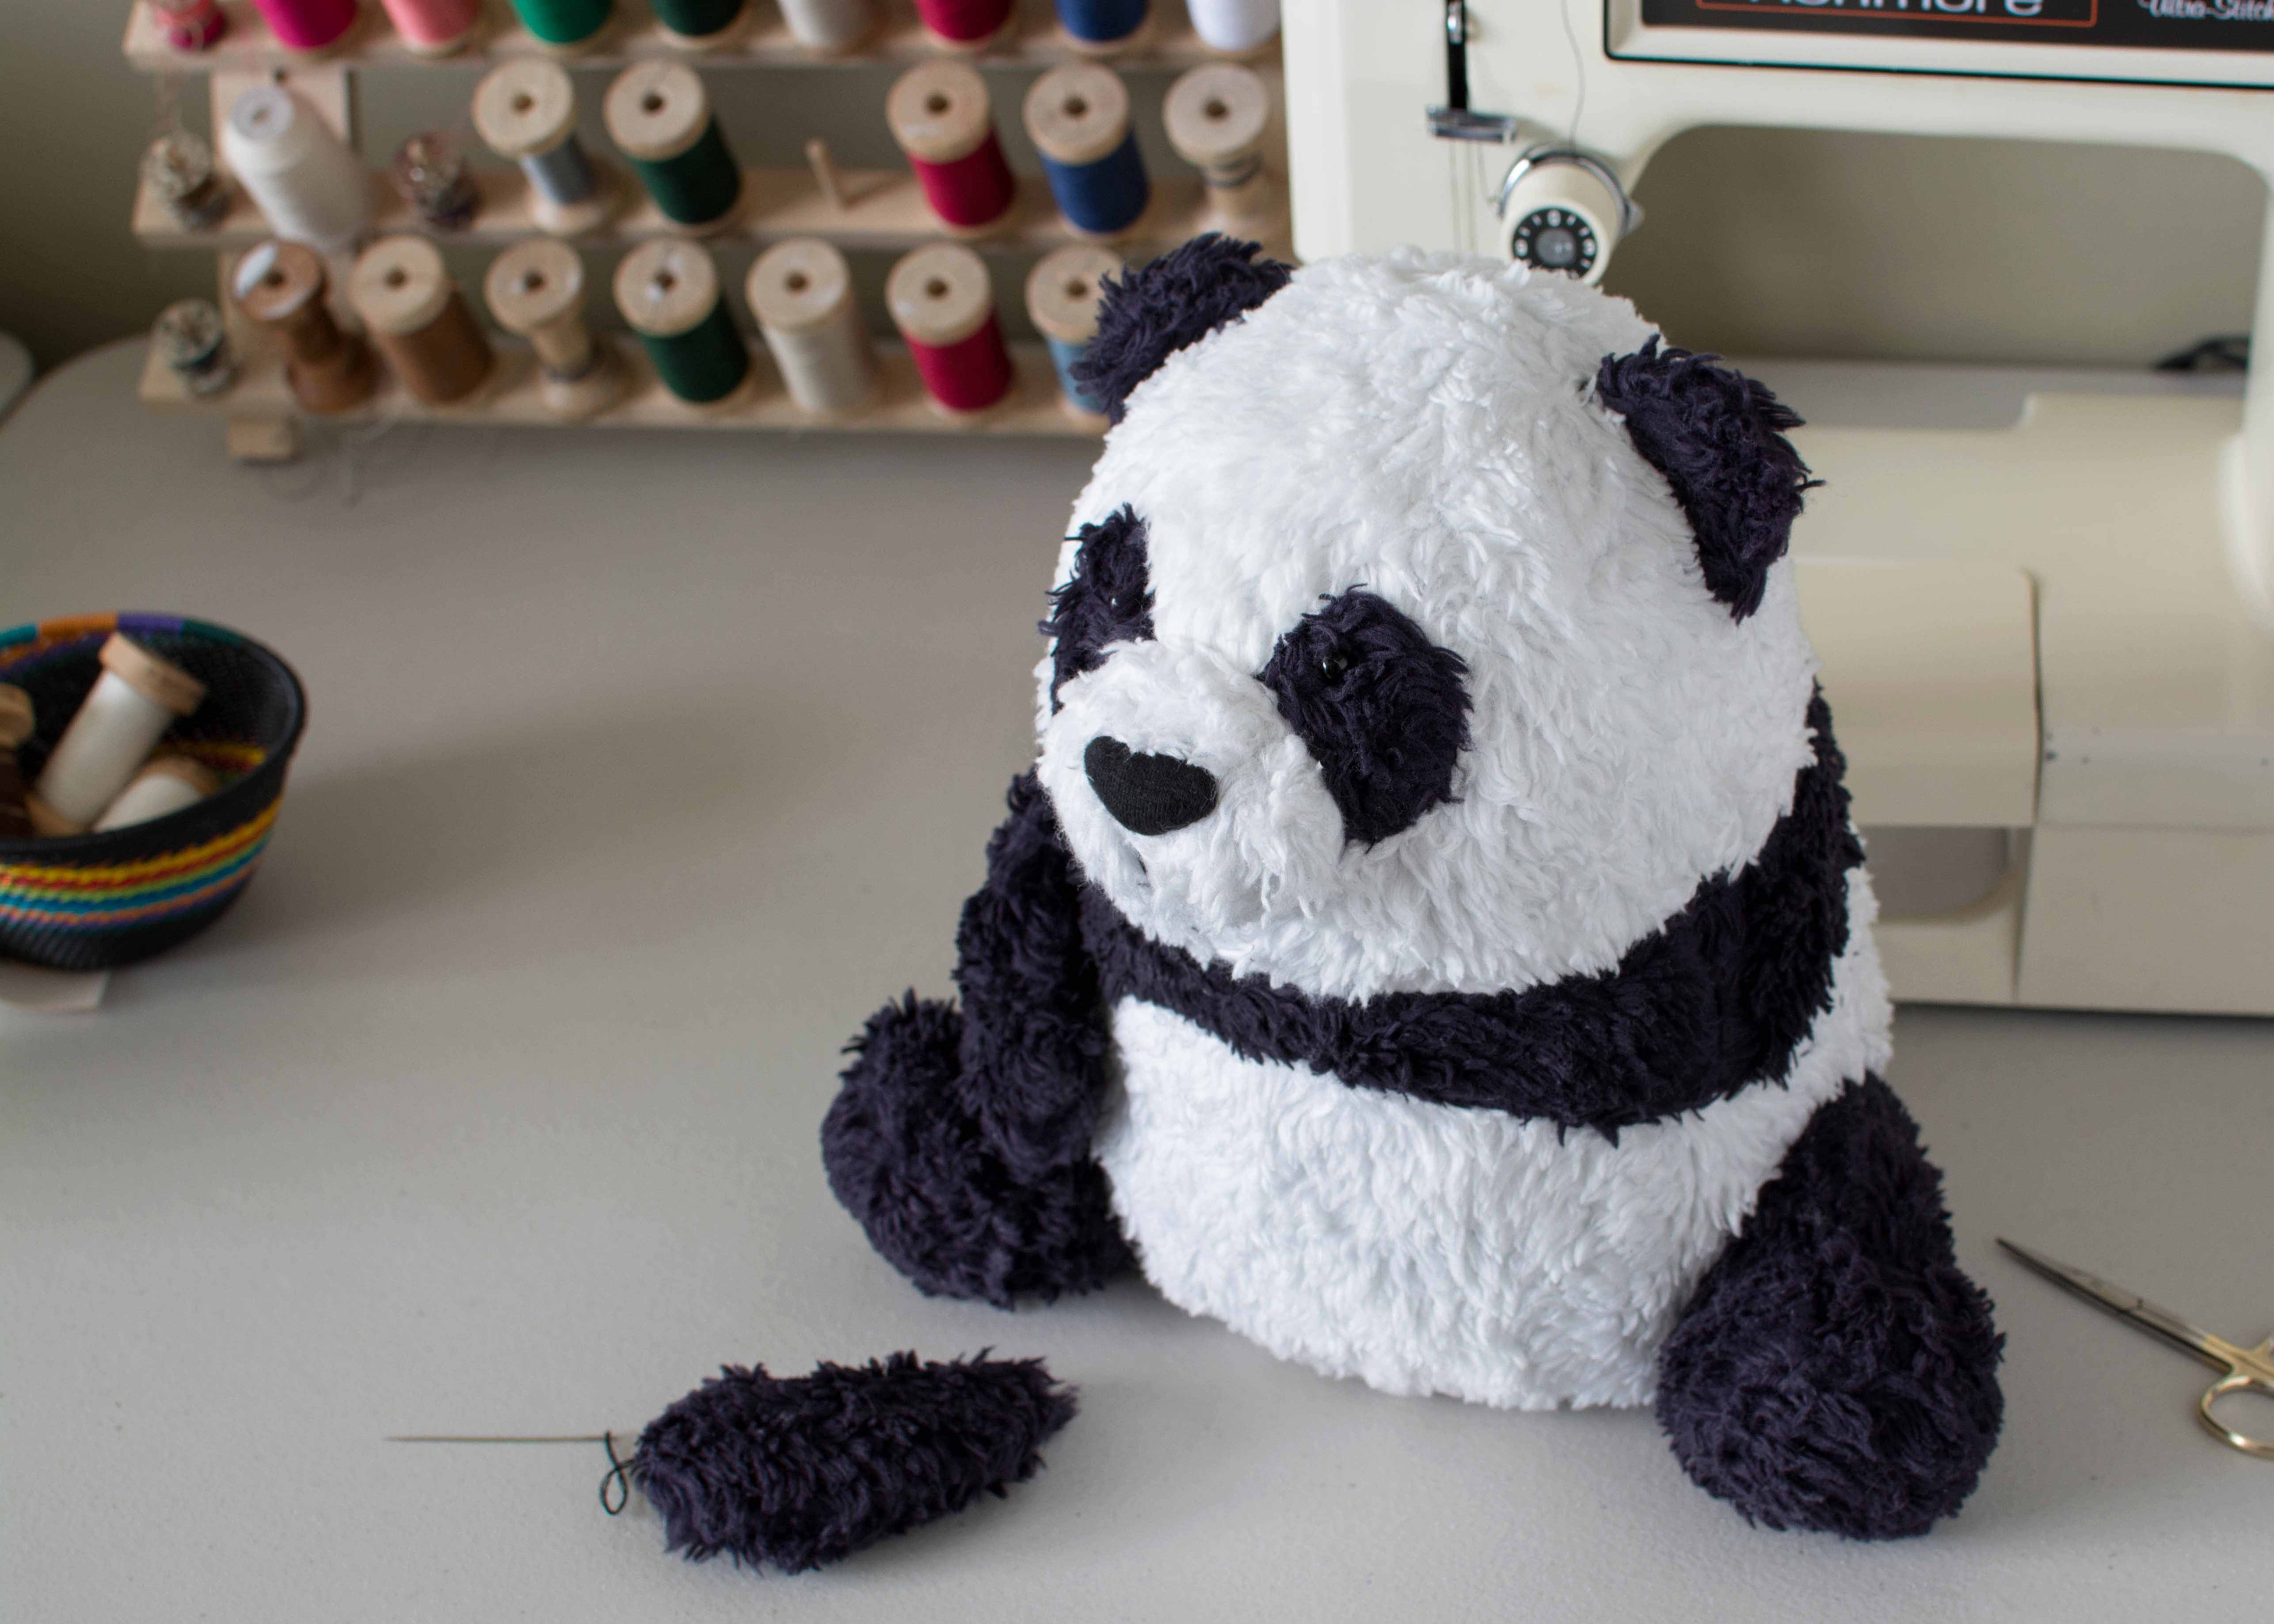 OOAK Organic Panda in progress sewing on the arms fluffmonger